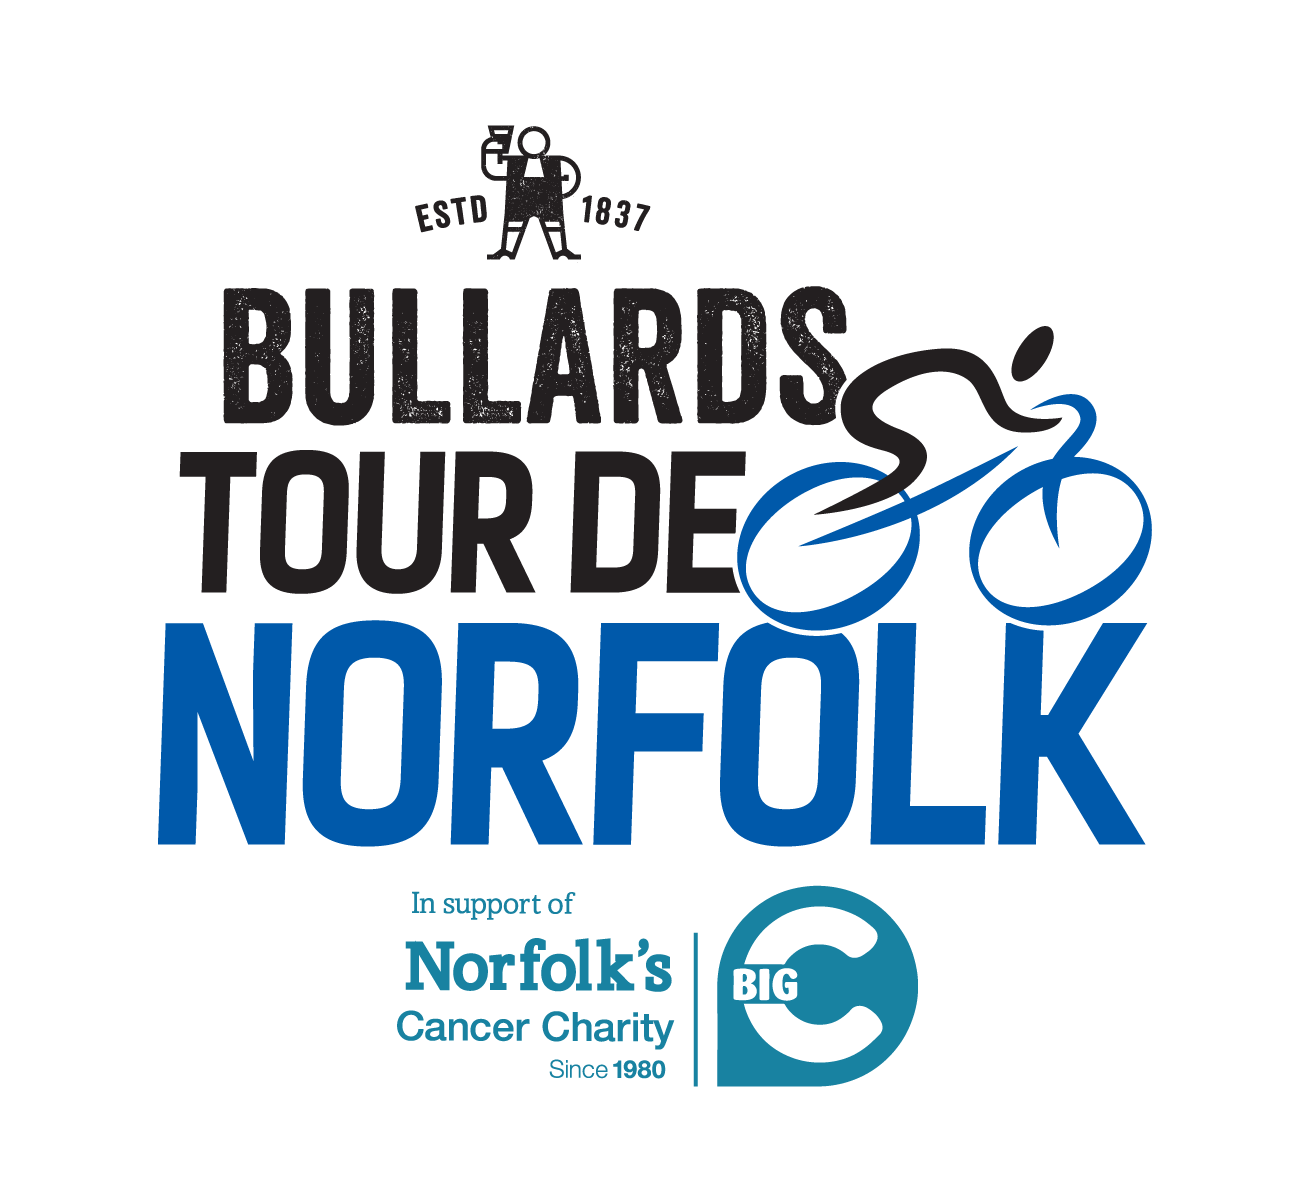 Tour de Norfolk